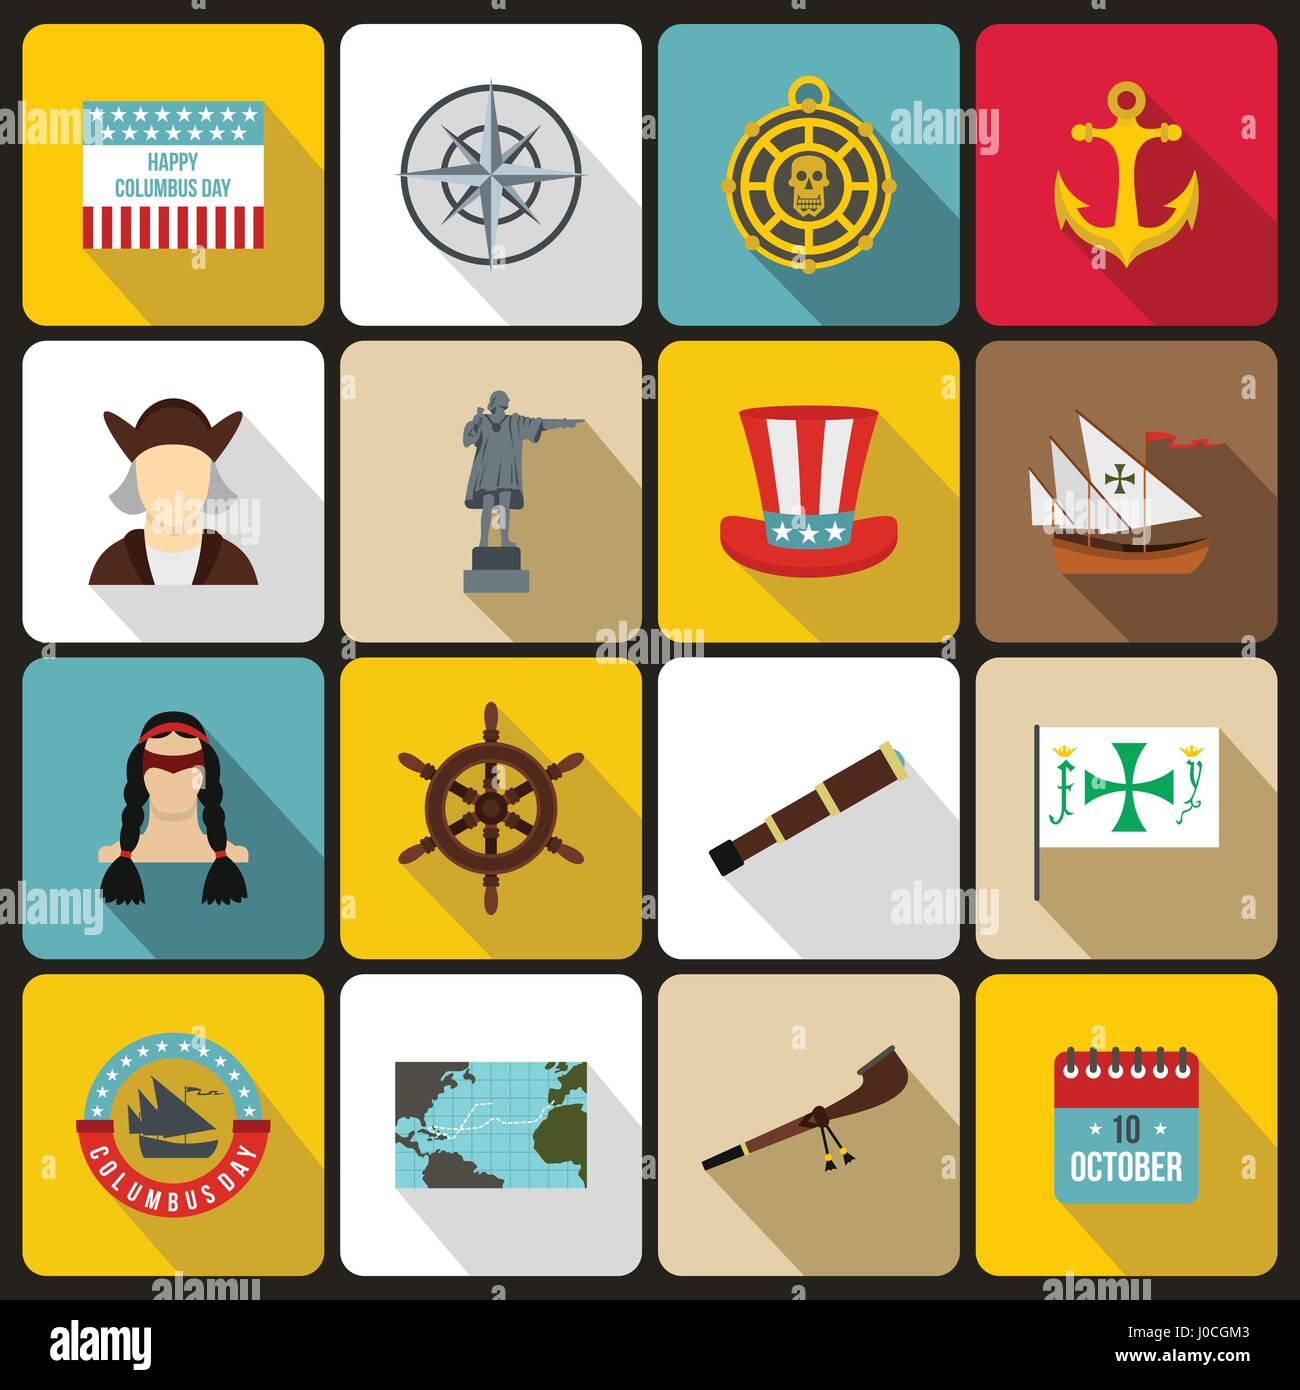 Columbus Day icons set, flat style - Stock Vector